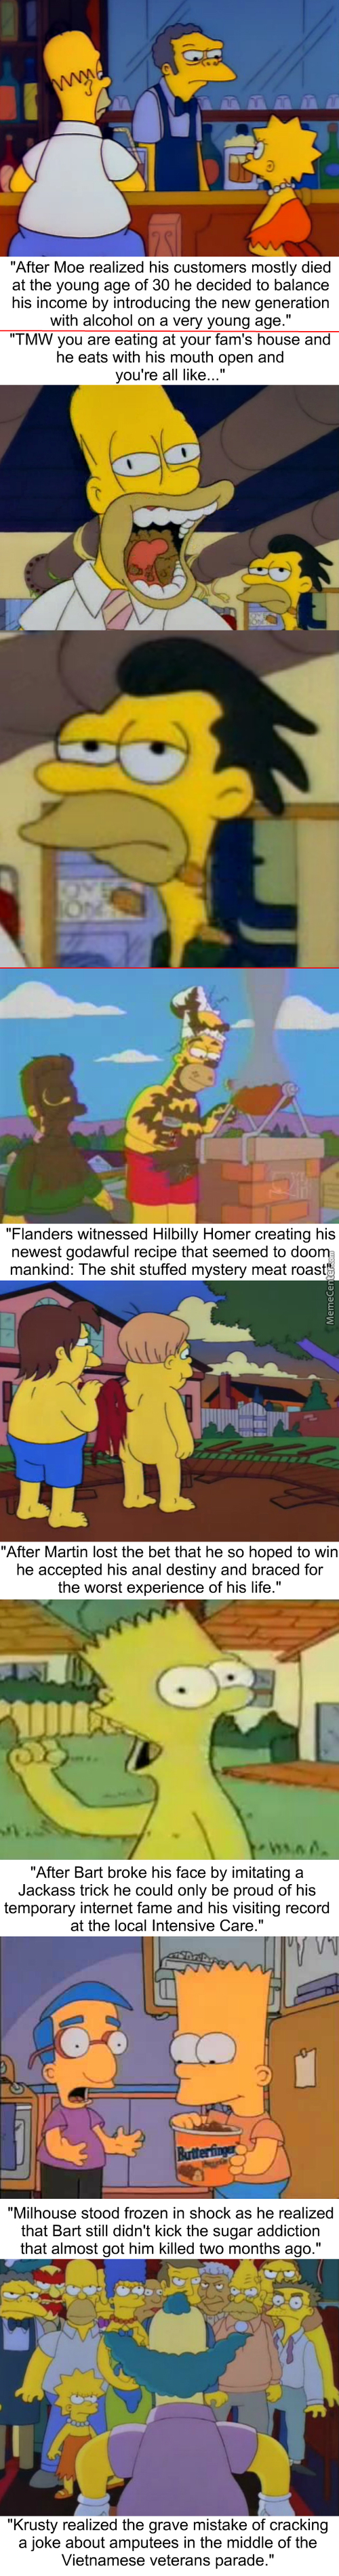 Homerstrips: Homer's Bad Table Manners And God Defying Recipe